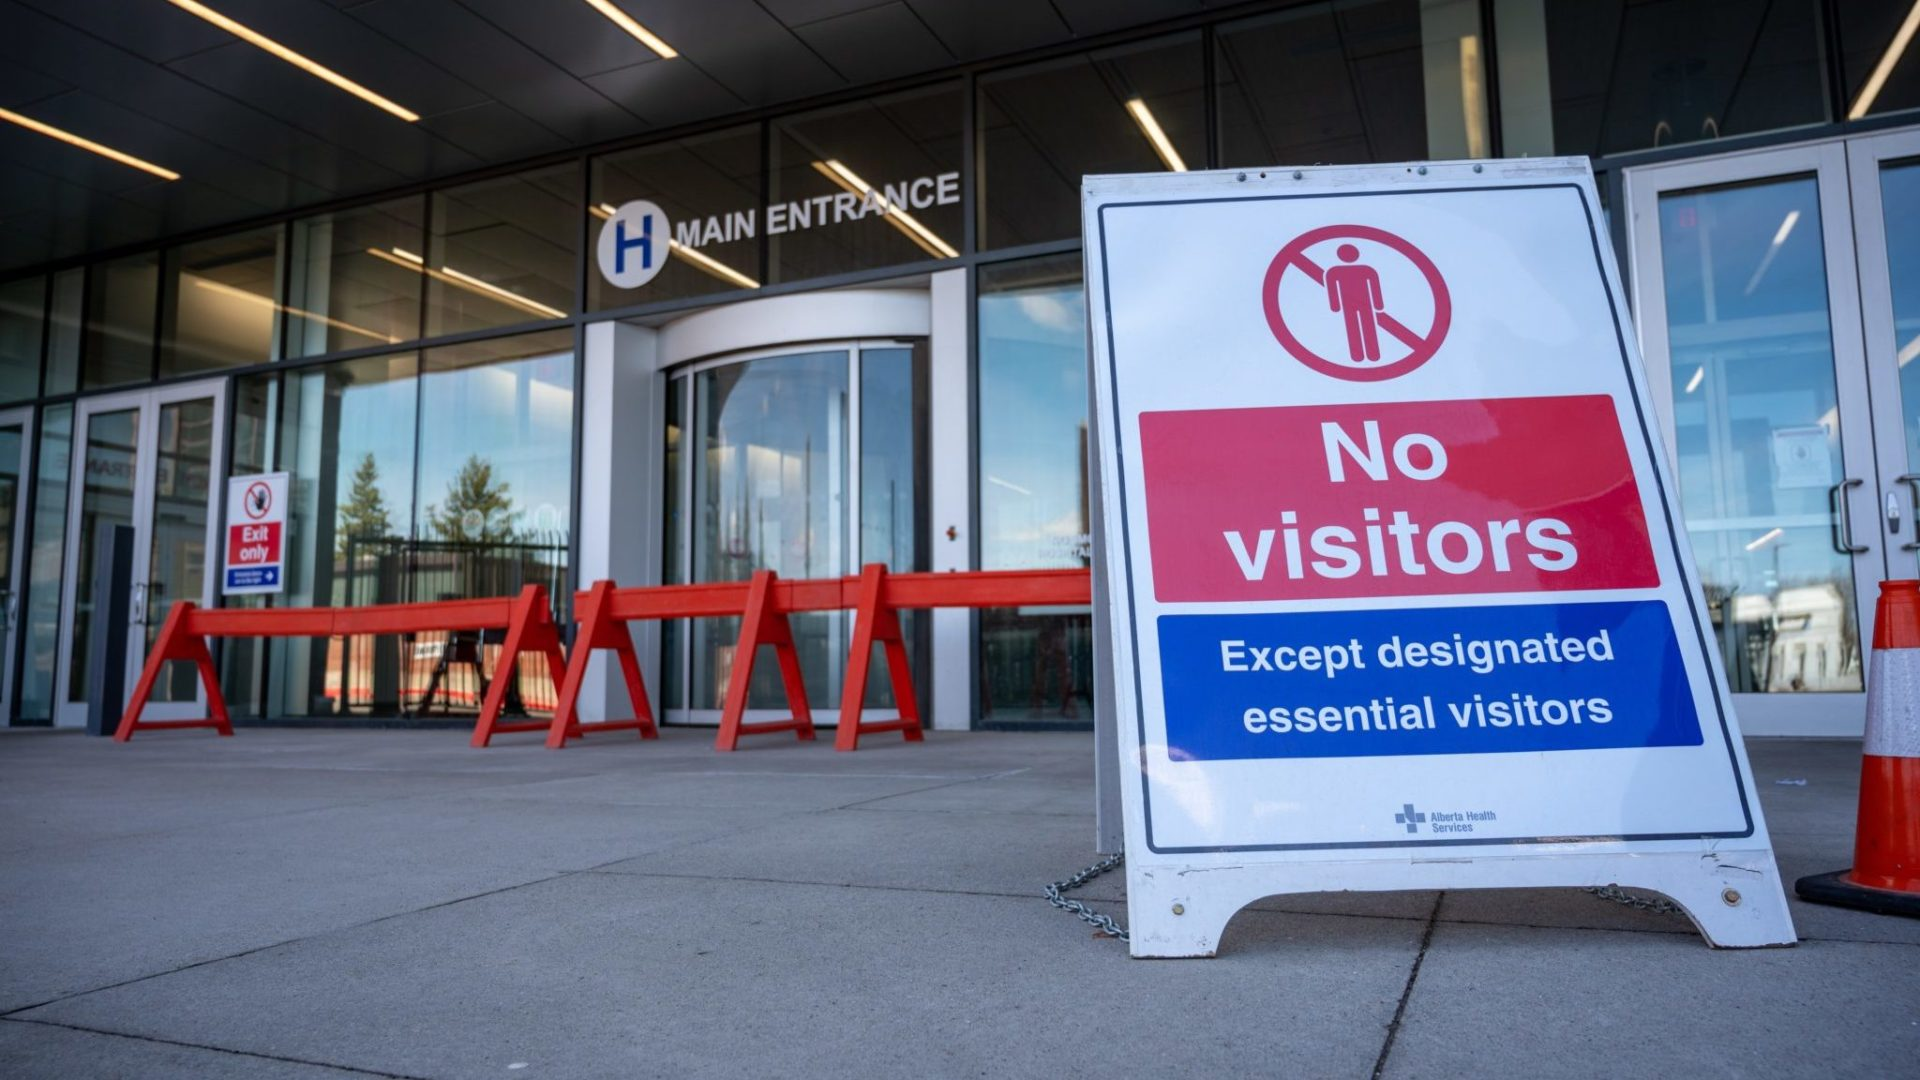 No visitors allowed signage due to COVID-19 at Chinook Regional Hospital in Lethbridge, Alberta